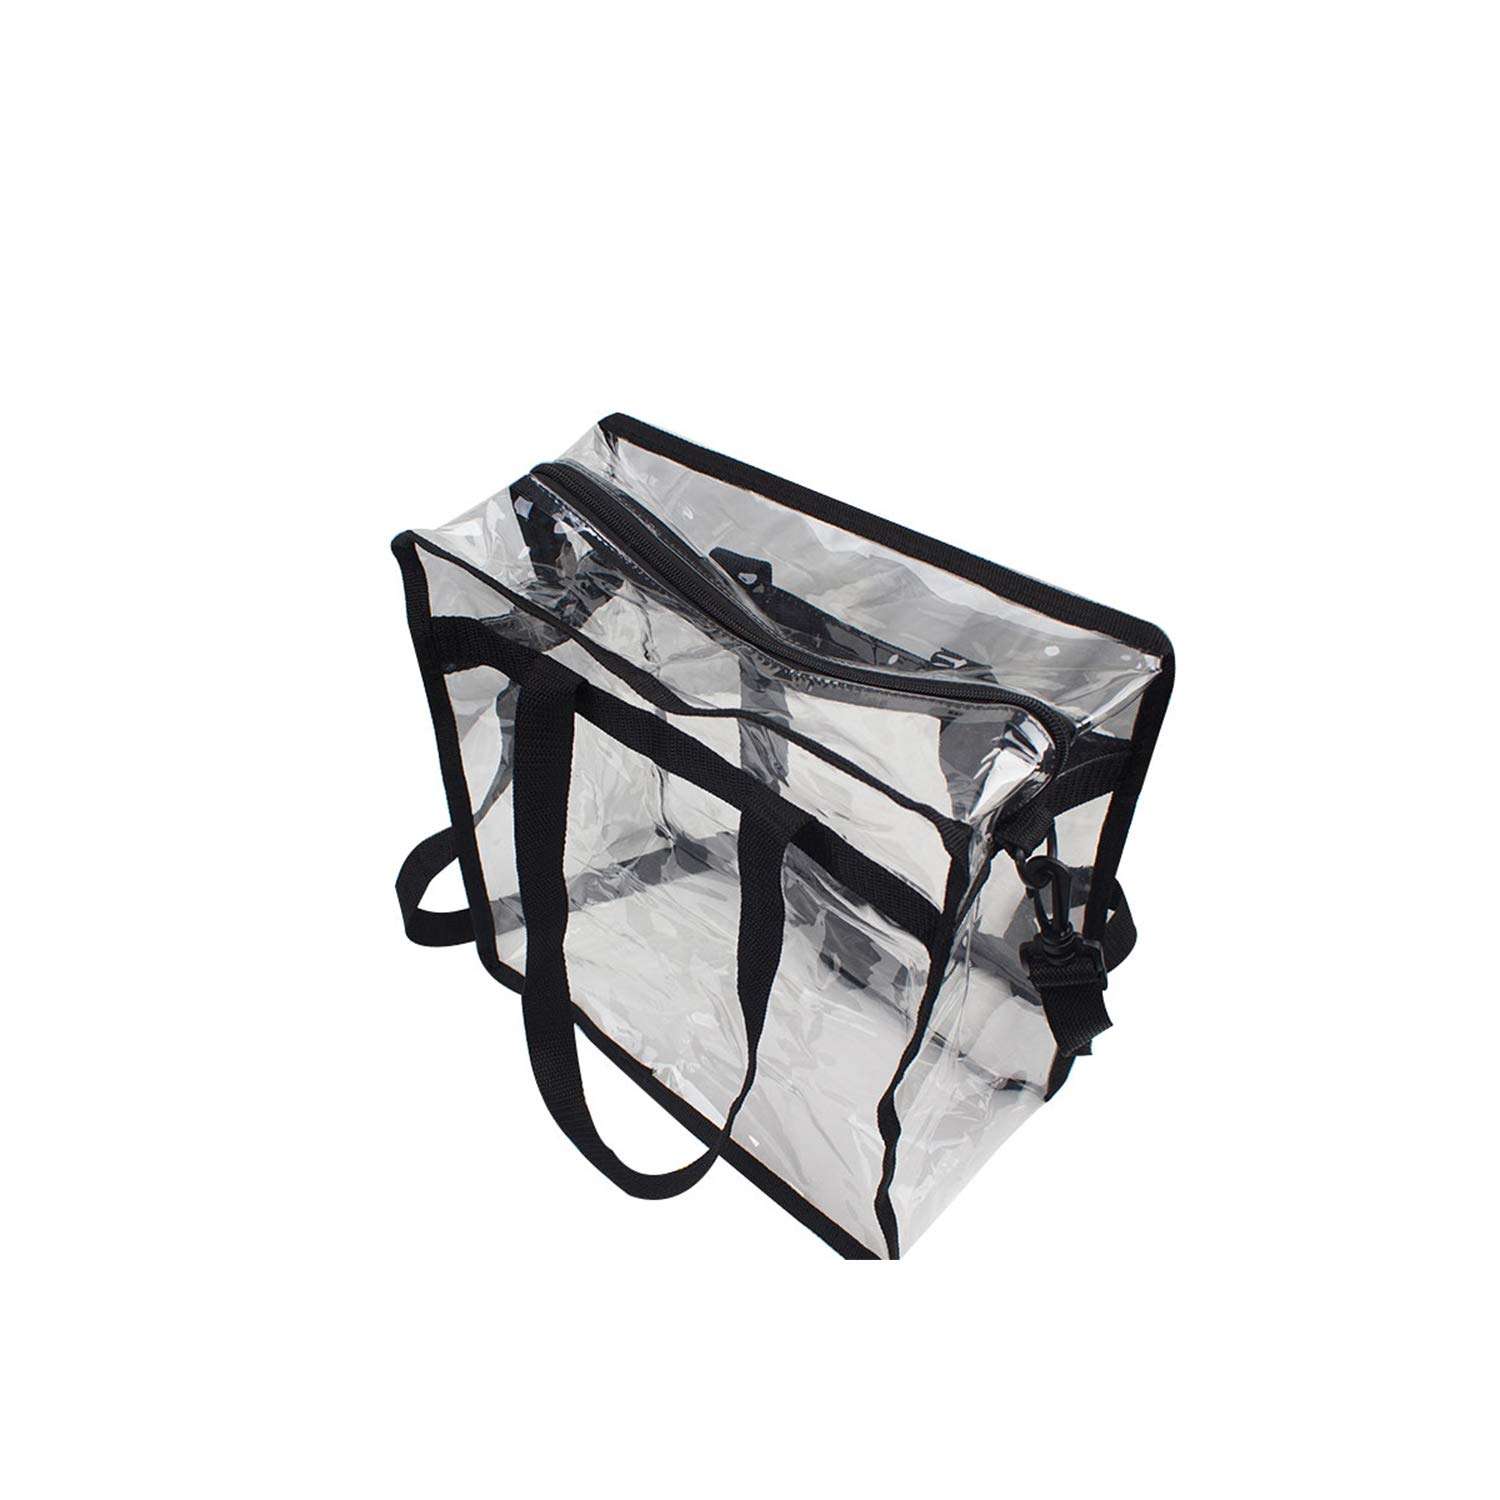 "Premium Clear Stadium Approved Bag - Clear Tote Bag with Cross Body Messenger Adjustable Shoulder Strap-12"" X 12"" X 6"""